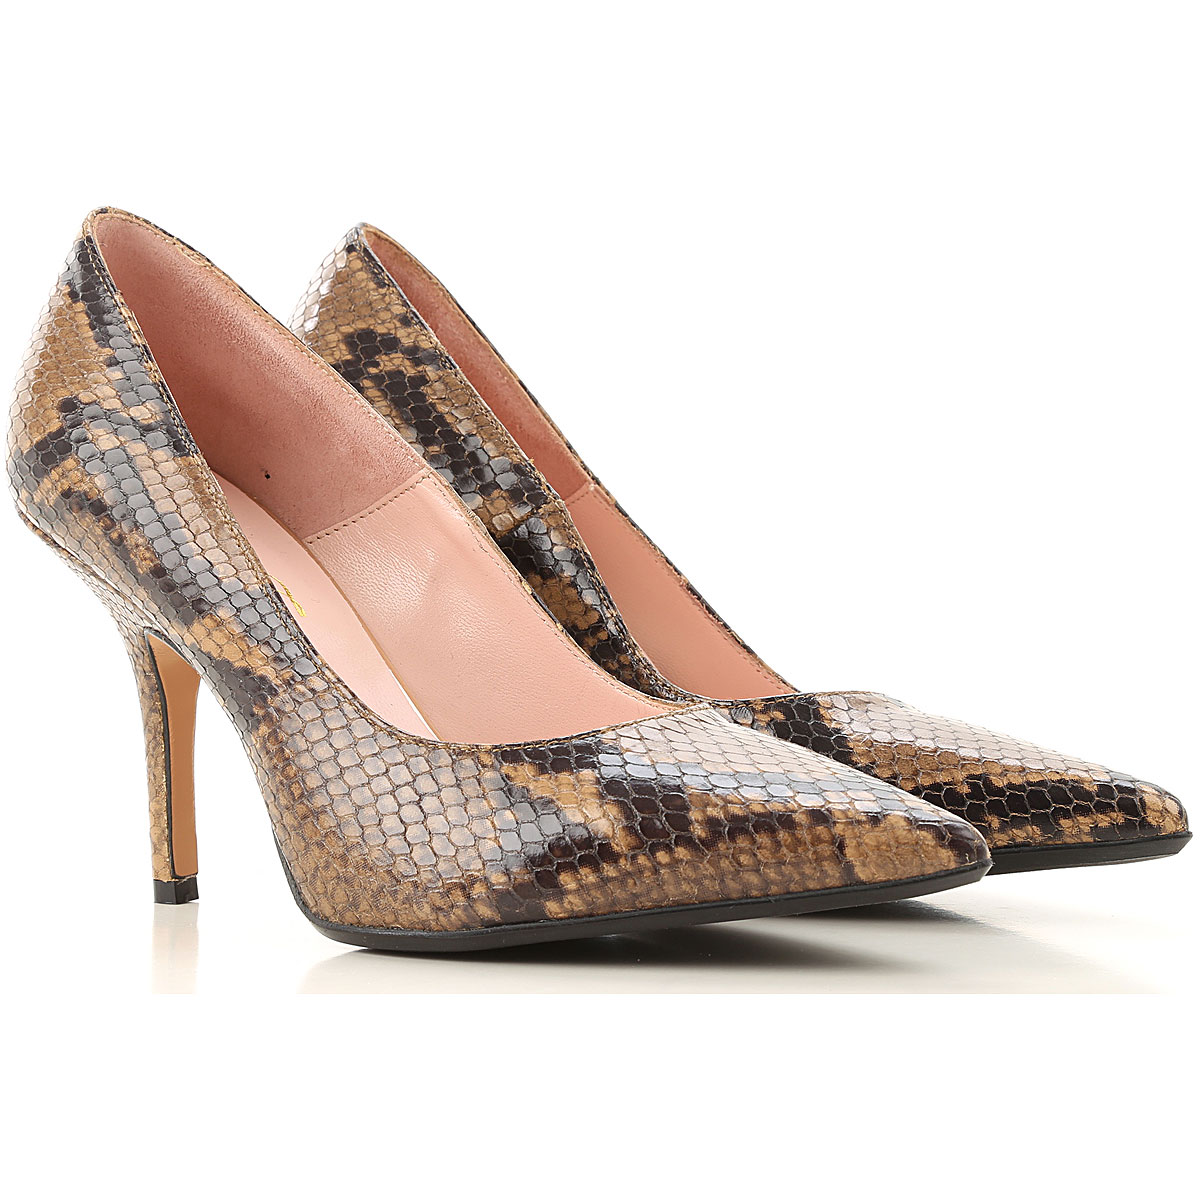 Anna F. Pumps & High Heels for Women On Sale, Brown, Leather, 2019, 10 11 6 7 8.5